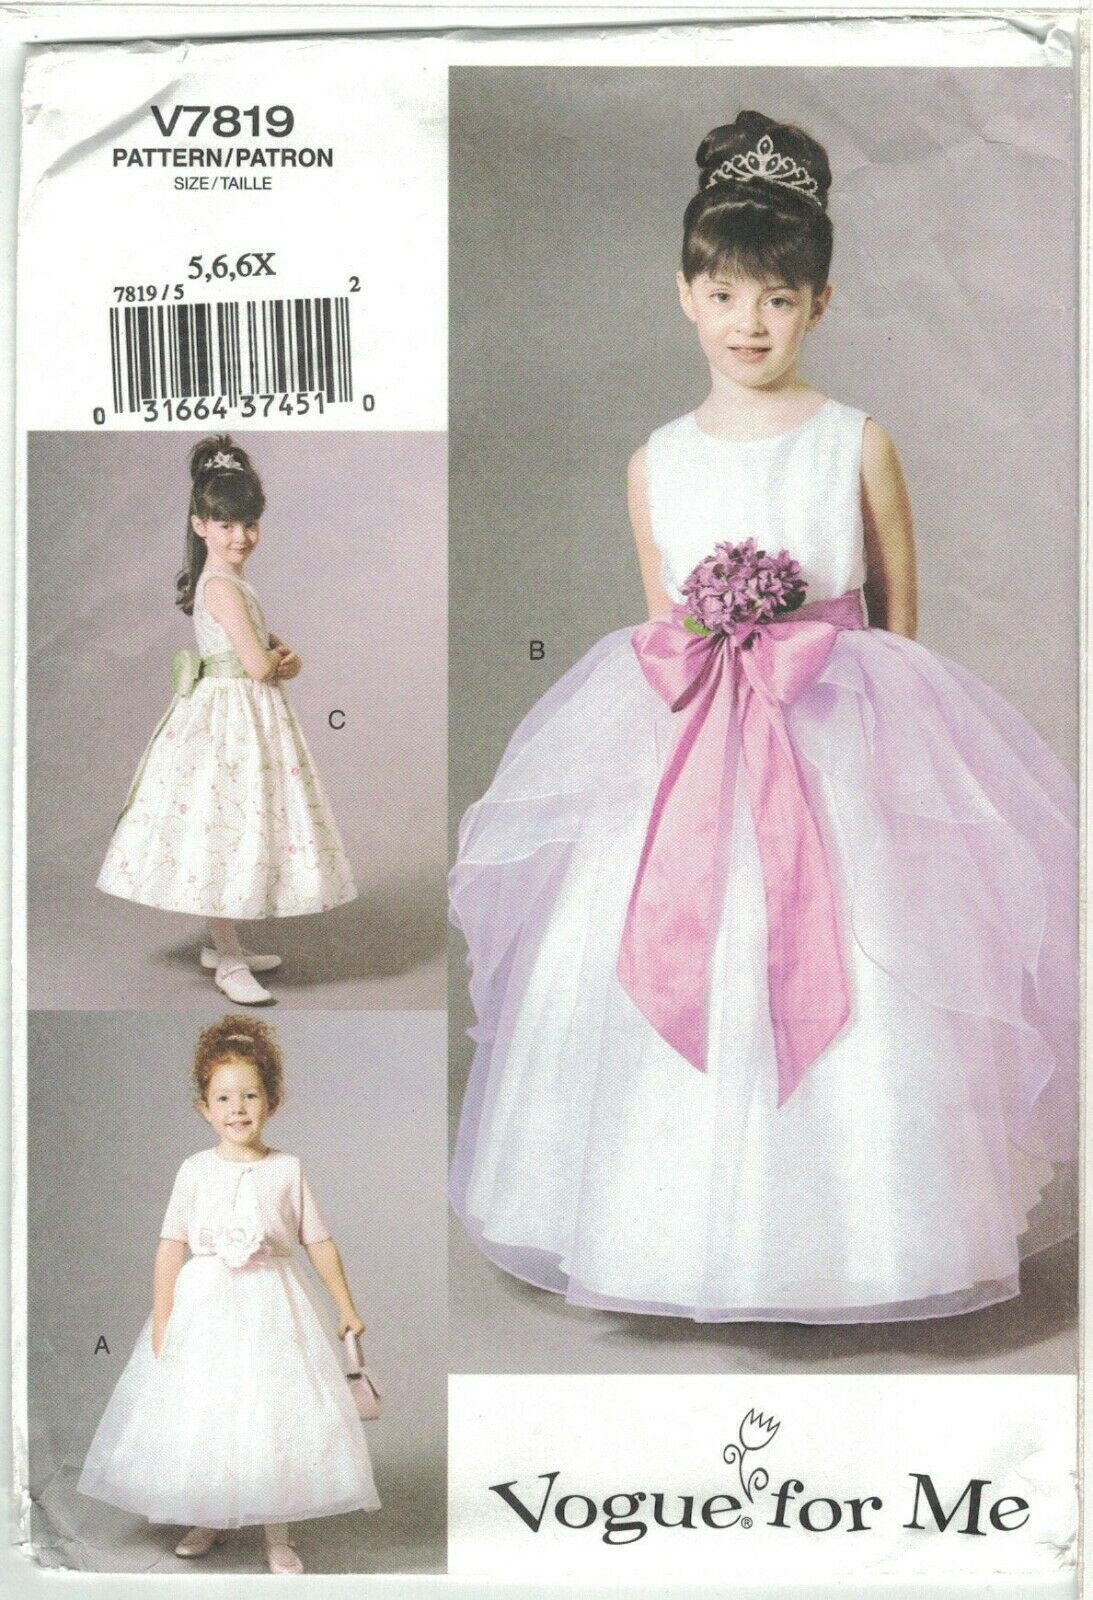 Primary image for Vogue 7819 Girl's Flowergirl Communion Princess Dress & Jacket Size 5 6 6X Uncut